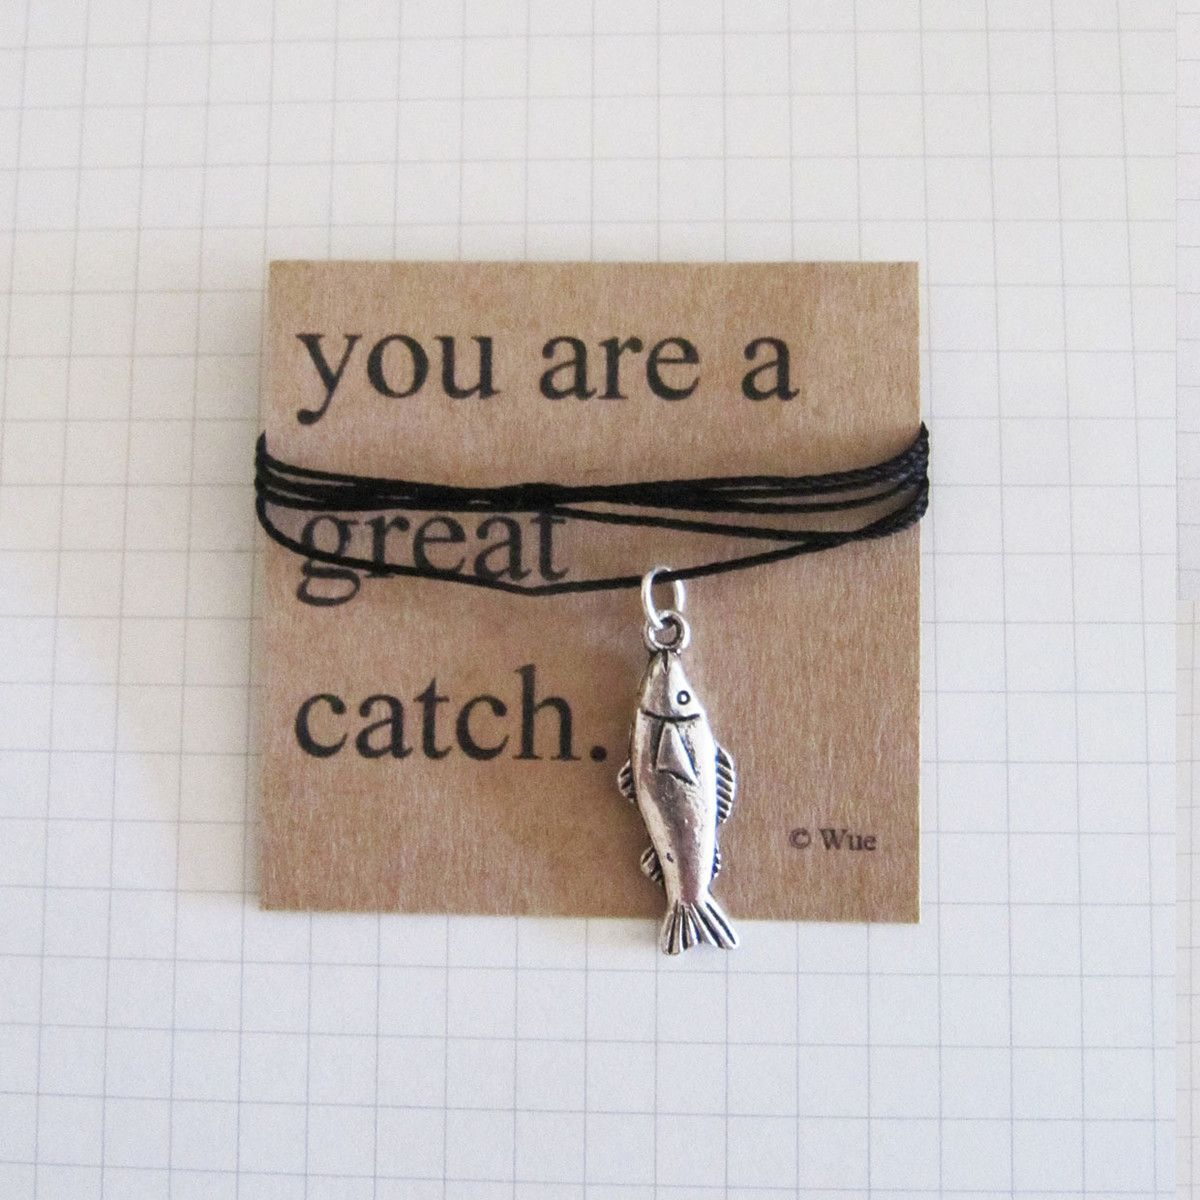 You Are A Great Catch Necklace by Wue